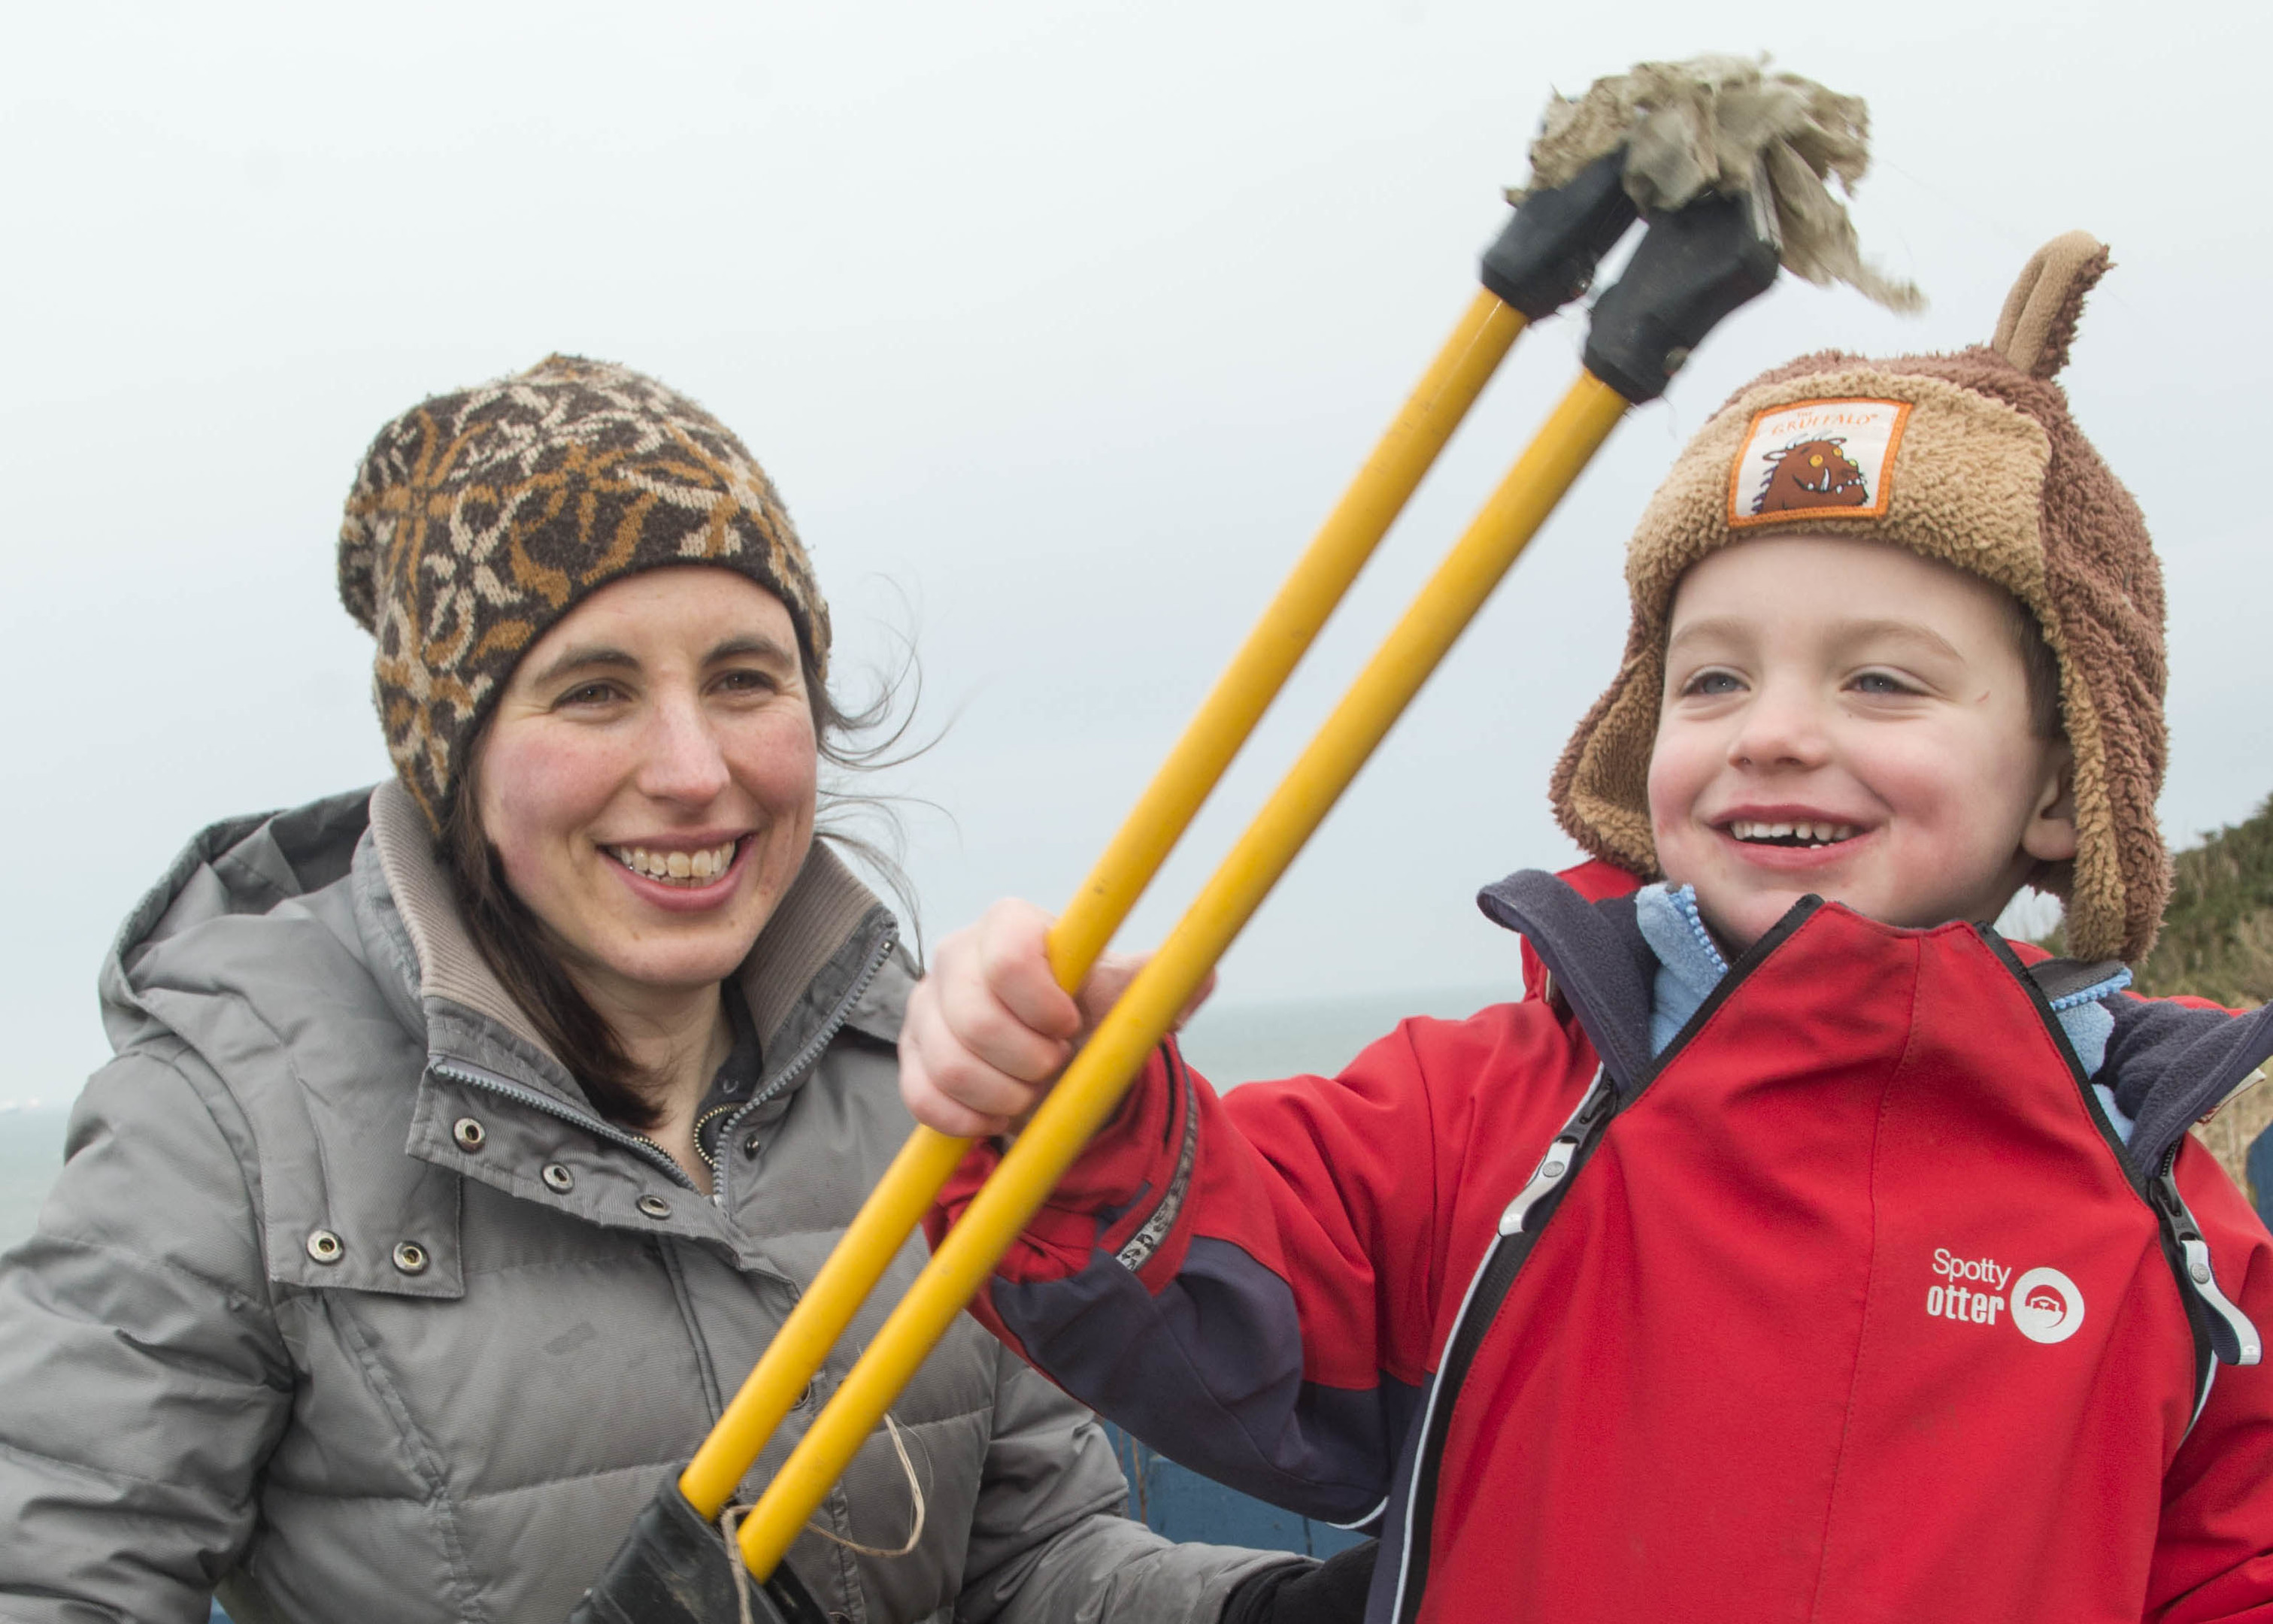 11/03/16 marion harrald and son (4) Alex harrald Launch of community litter pick at torry battery